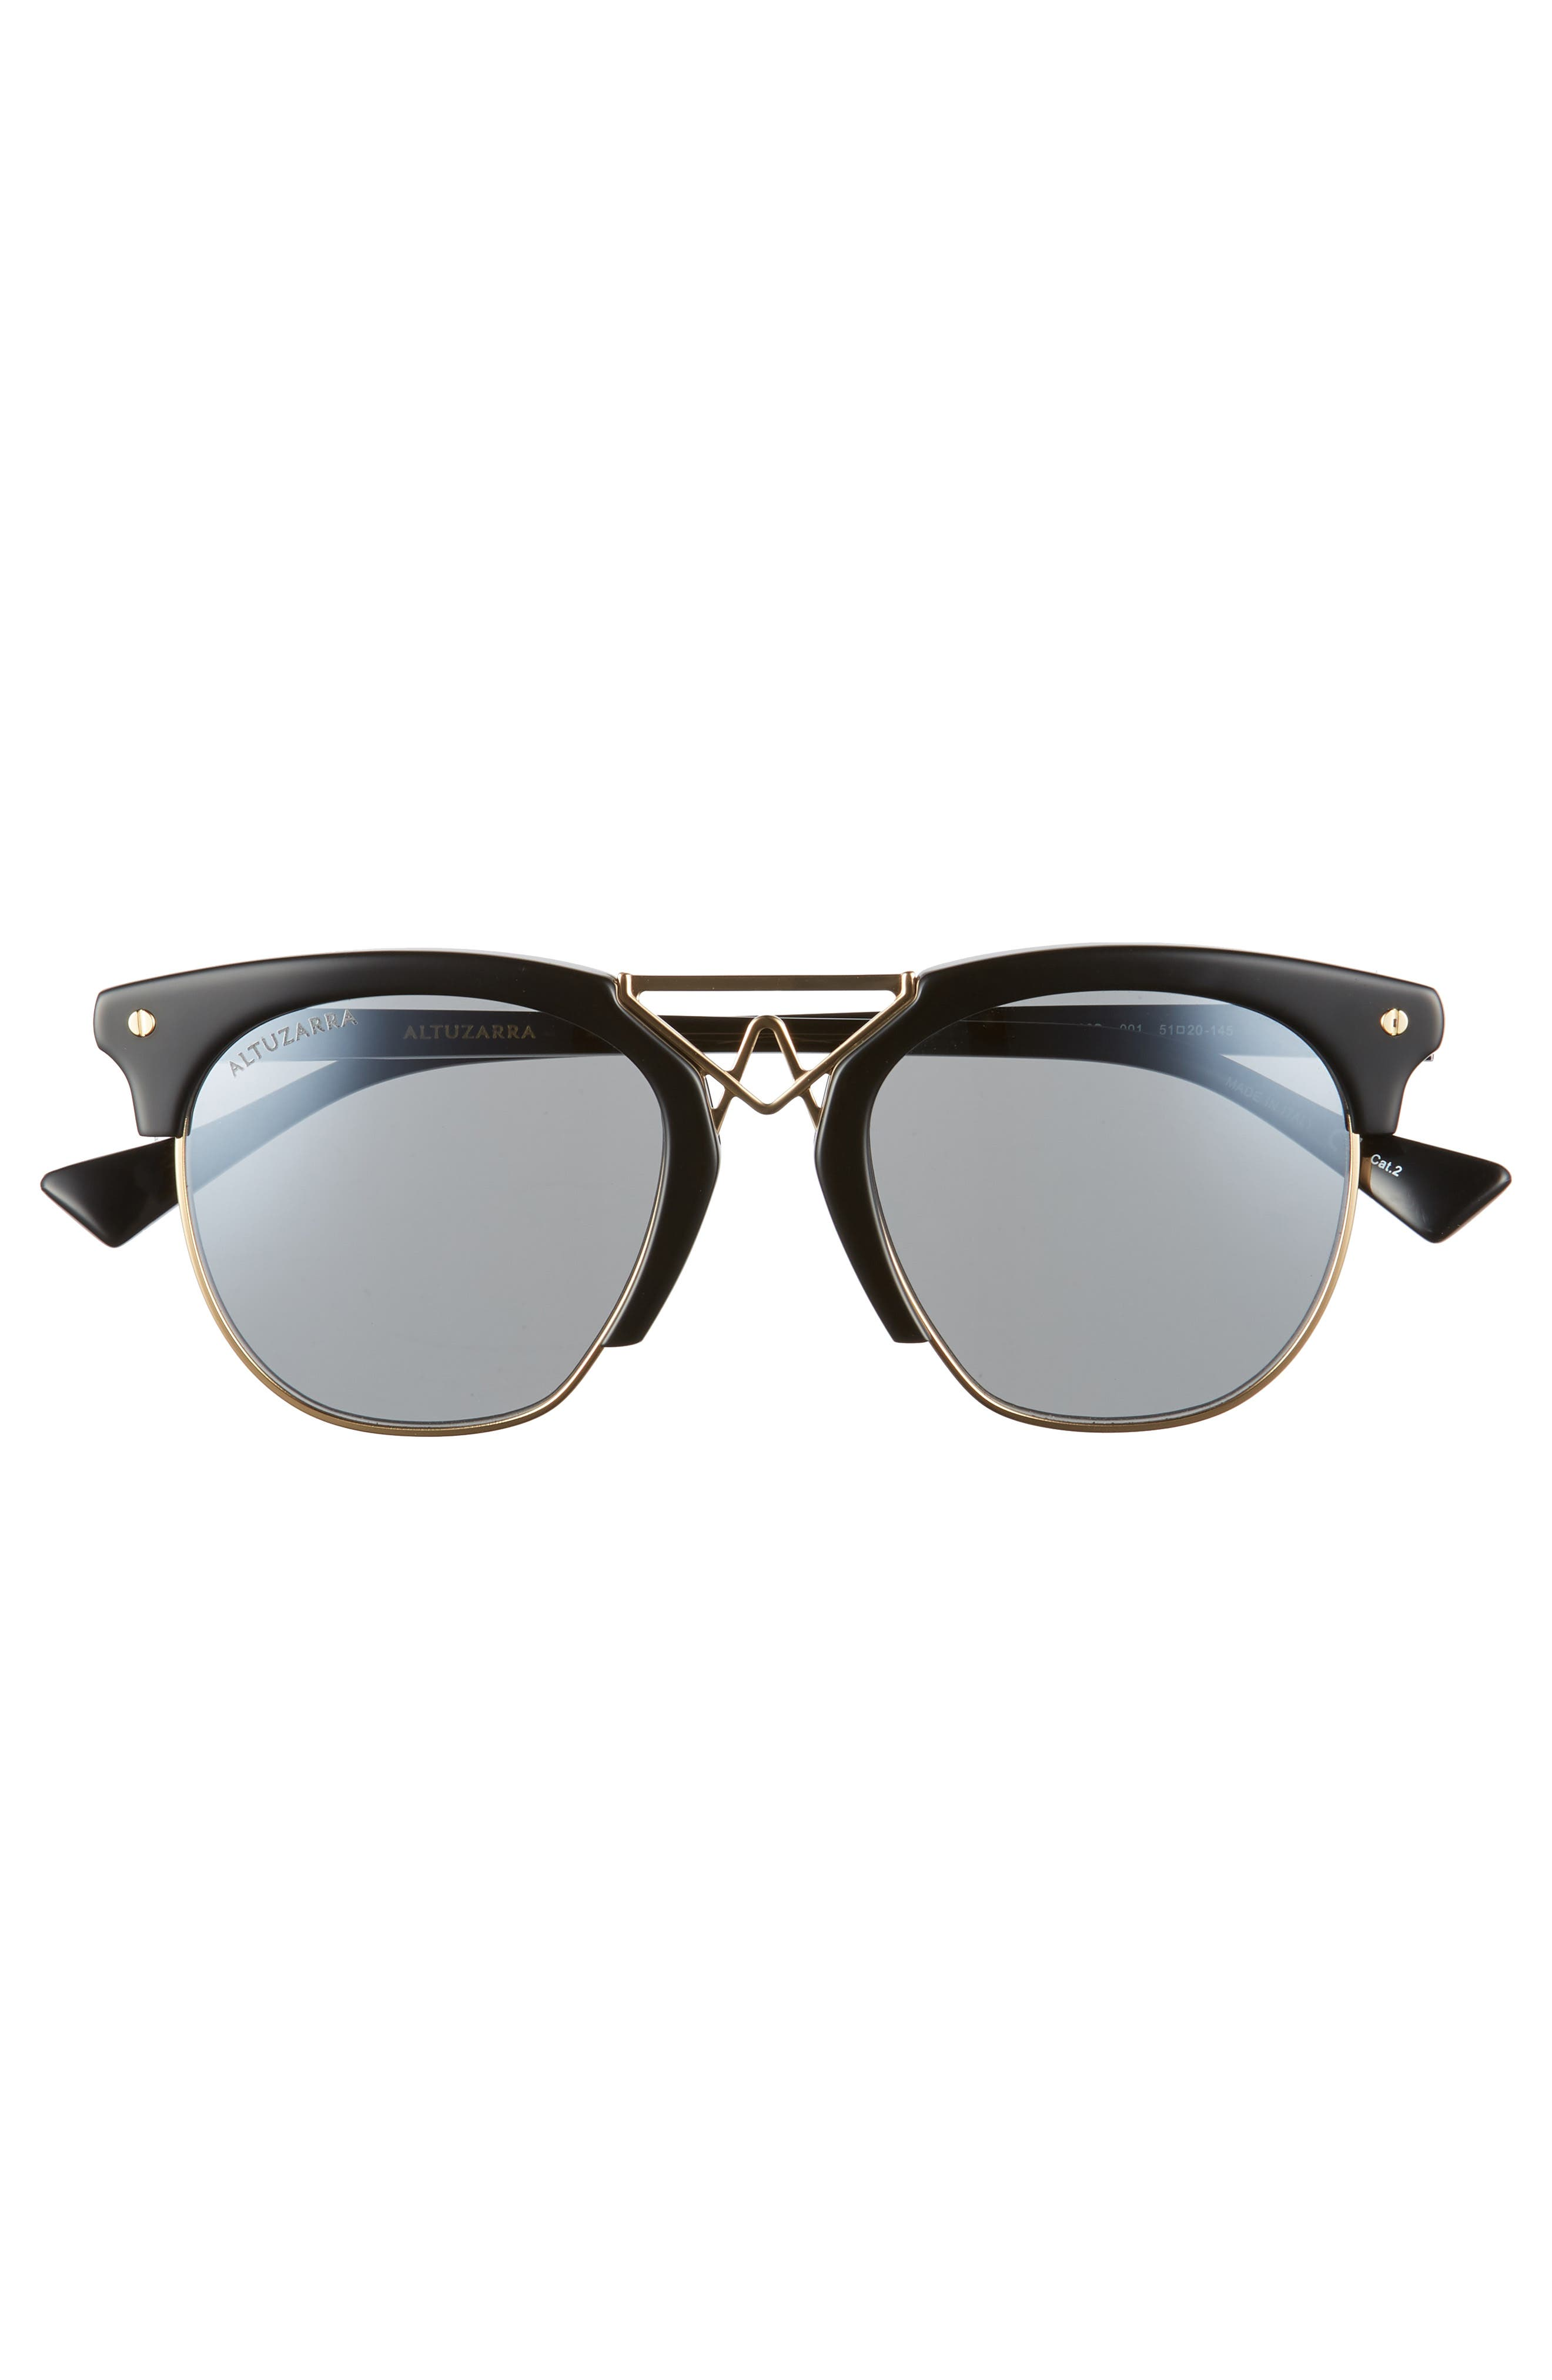 51mm Round Sunglasses,                             Alternate thumbnail 3, color,                             BLACK/ GOLD